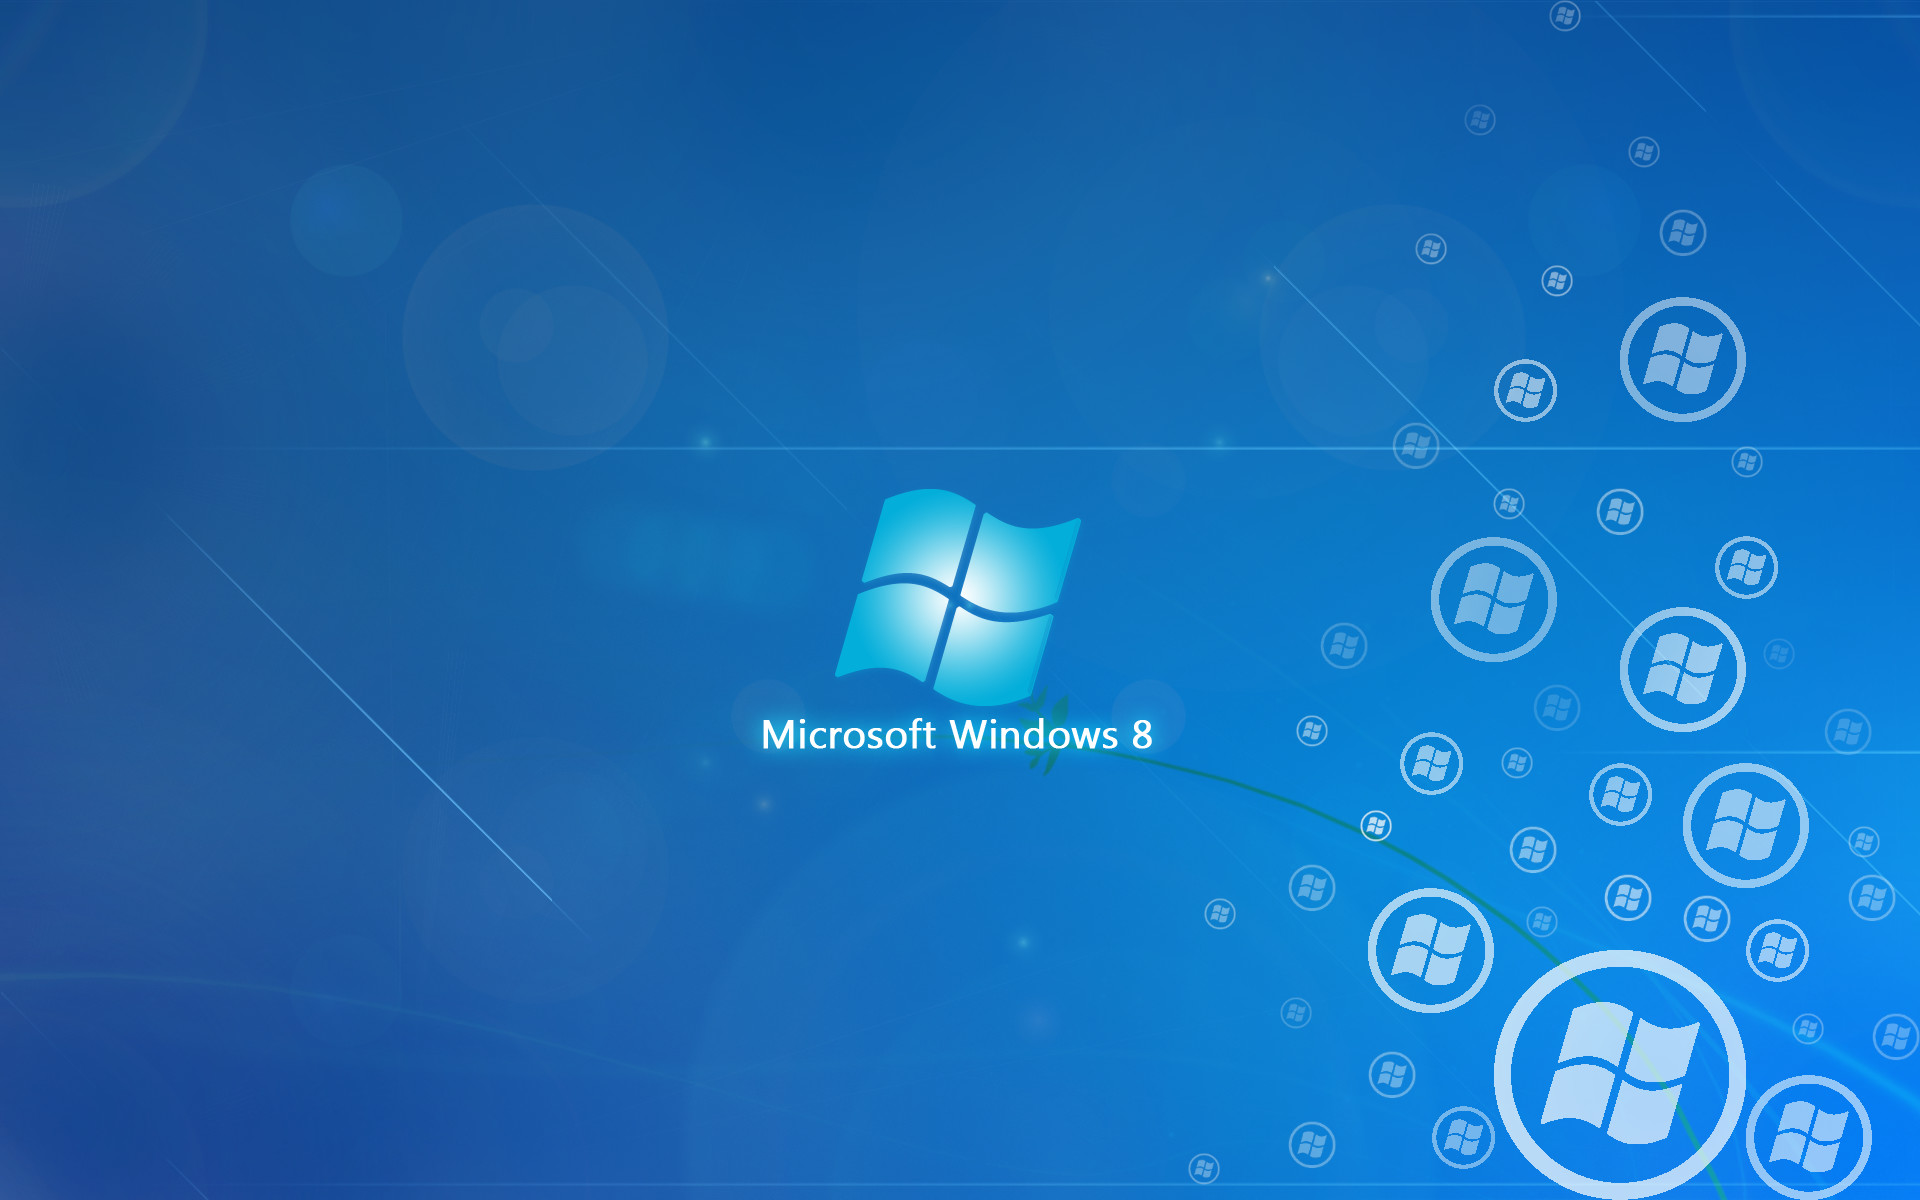 Download Microsoft Windows 8 Wallpapers Pack 1 – wallpapers – TechMynd